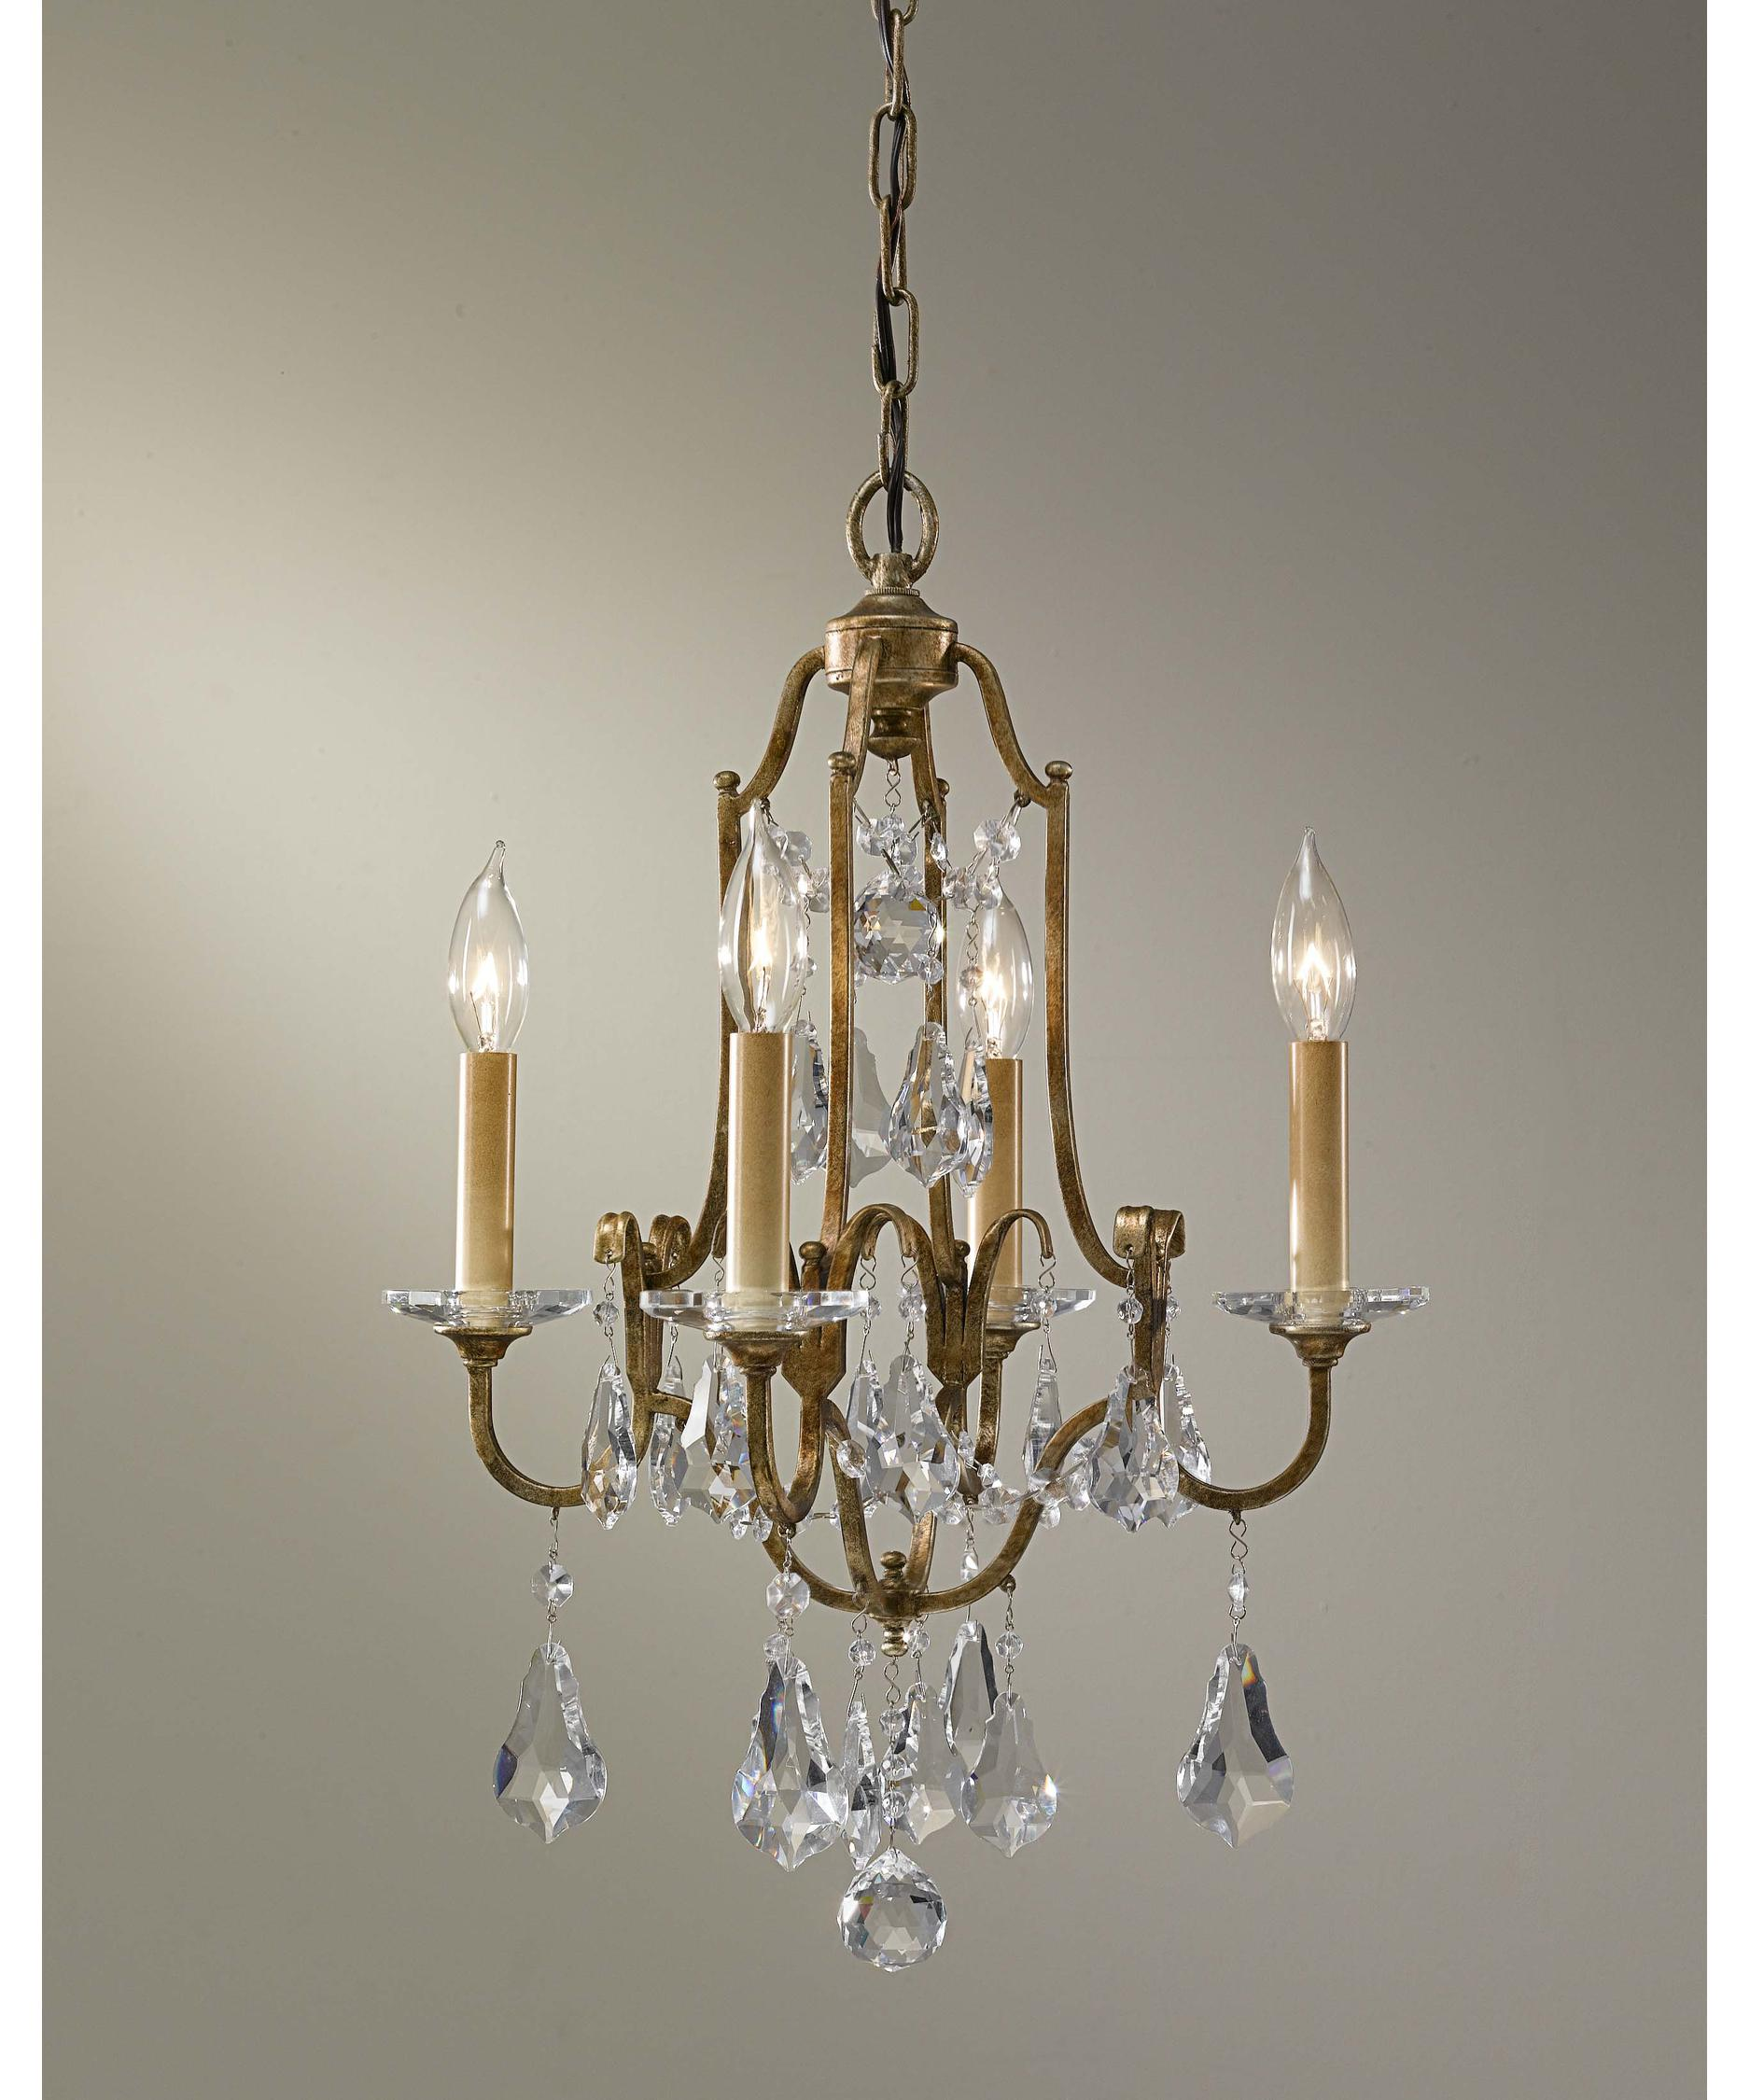 Murray Feiss Valentina 16 Inch Wide 4 Light Mini Chandelier – Murray Feiss Chandeliers